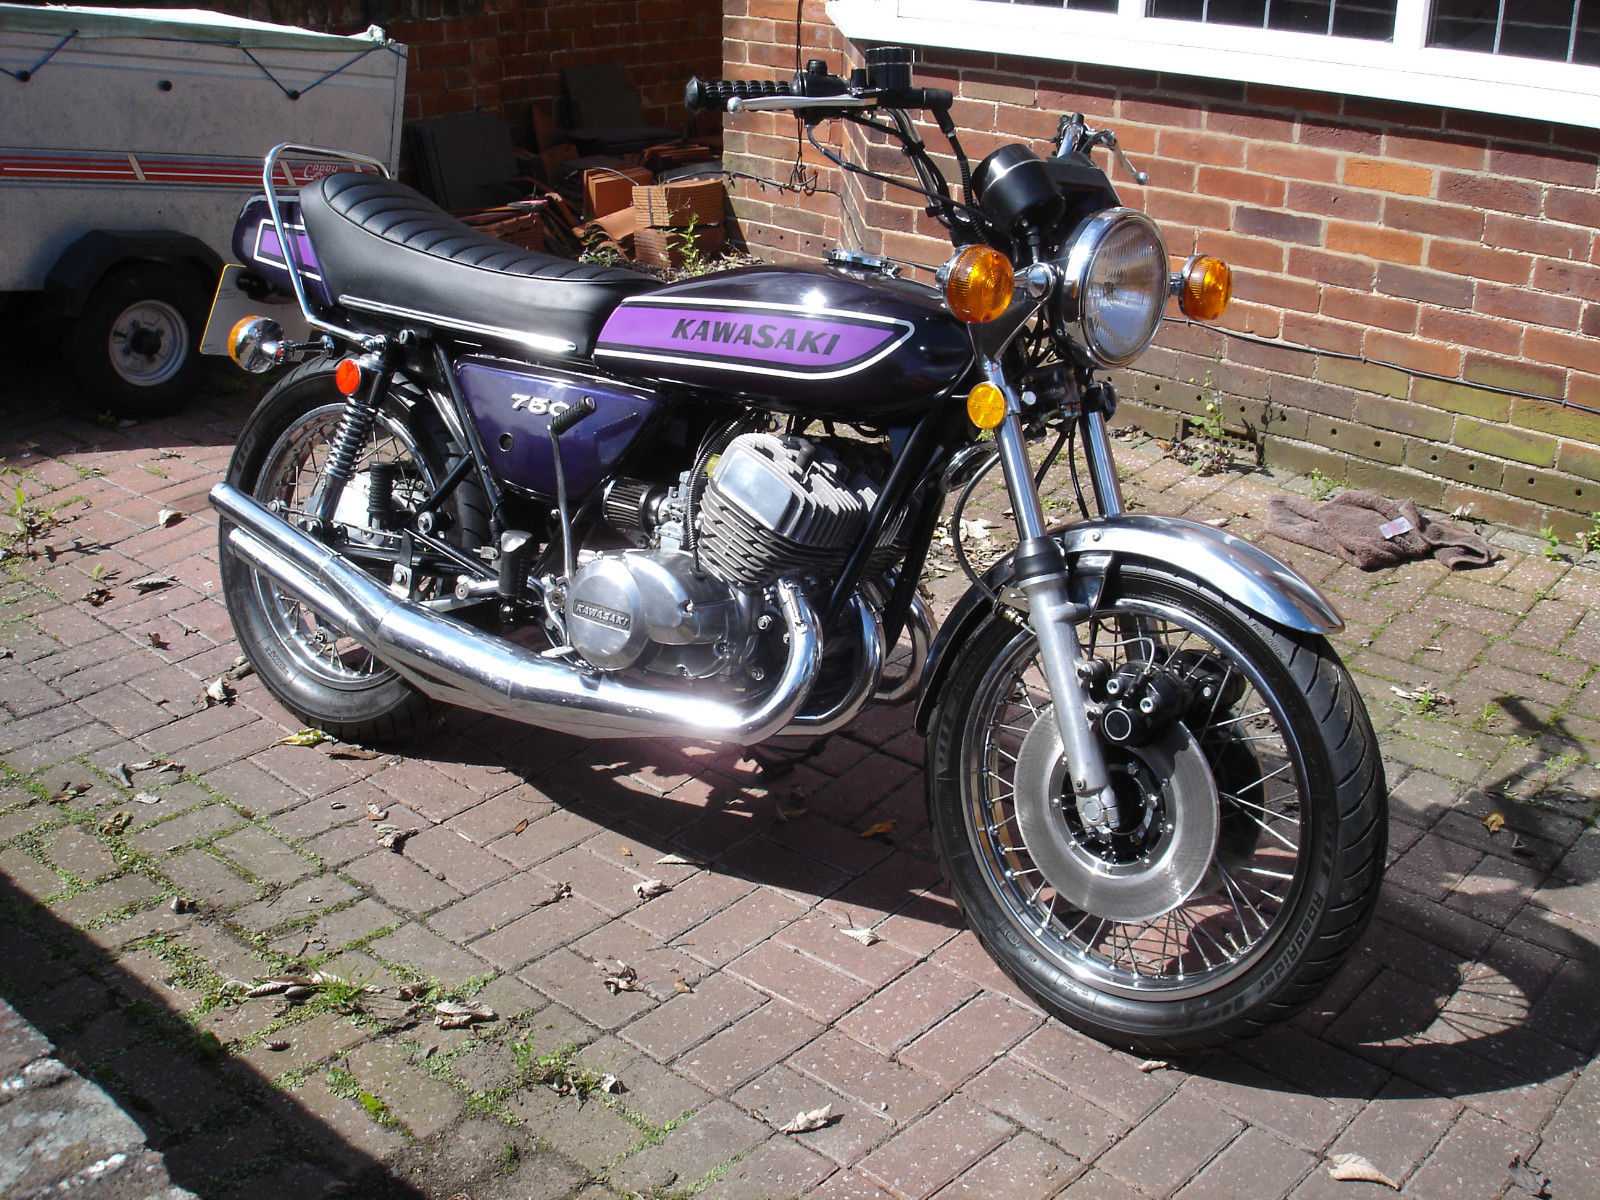 NOW SOLD>>> Here we have my friends Kawasaki H2c 750 triple in very nice condition.